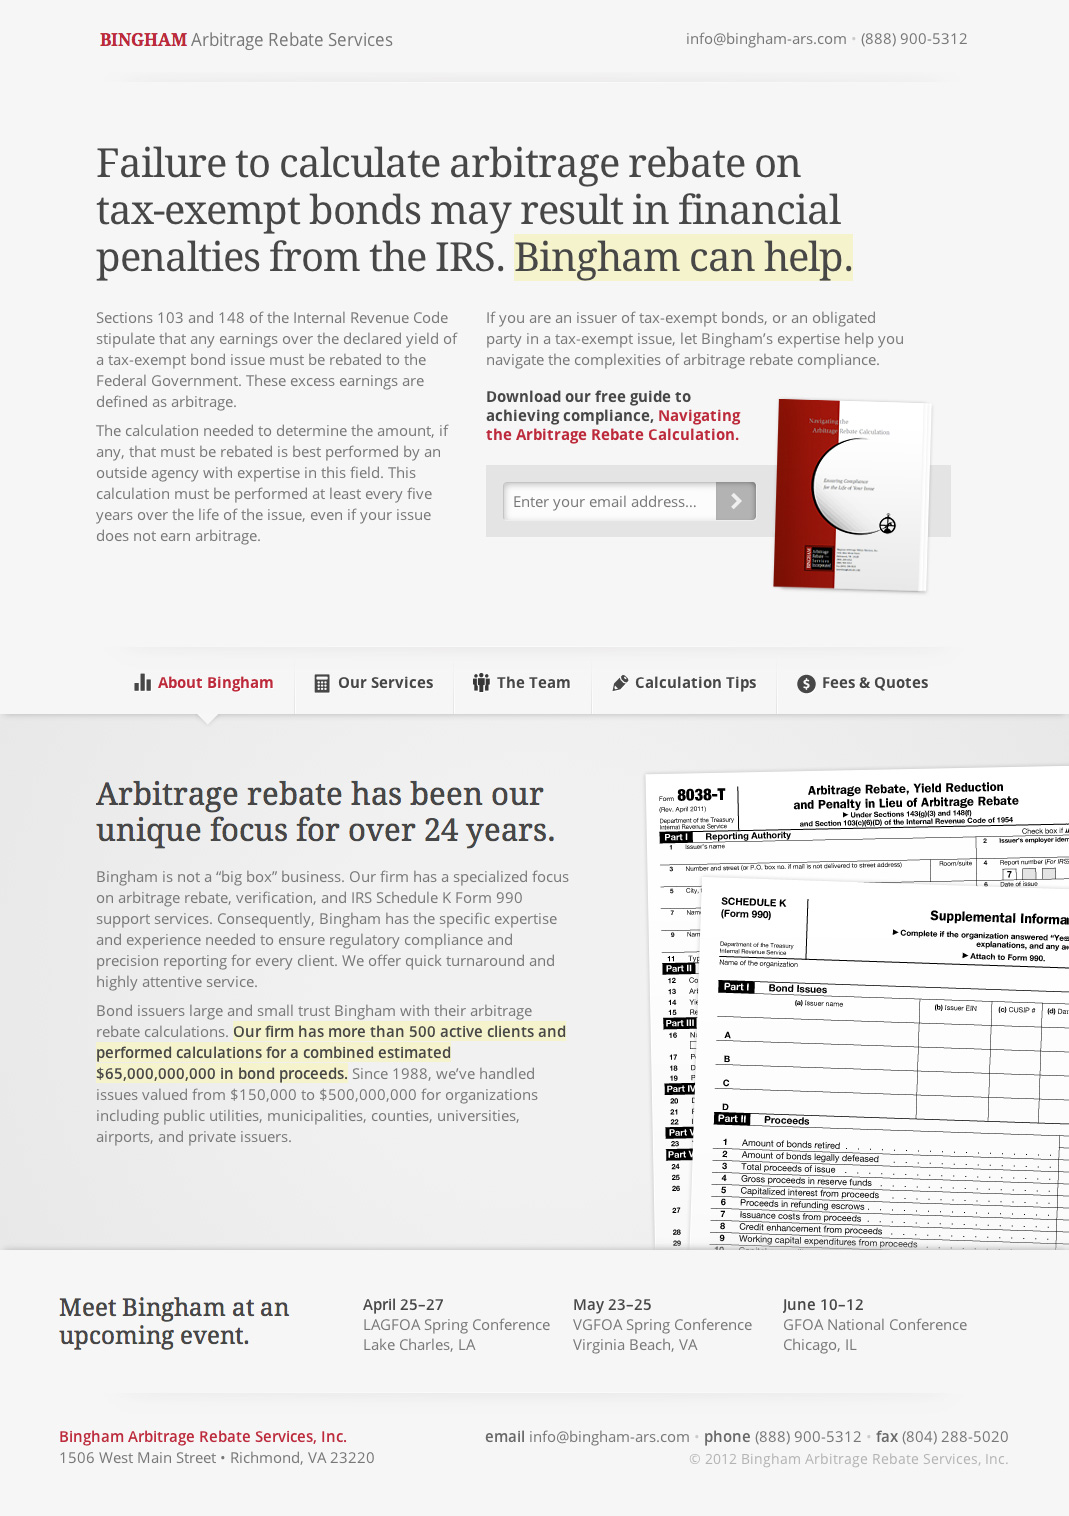 Bingham Arbitrage Rebate Website Screenshot